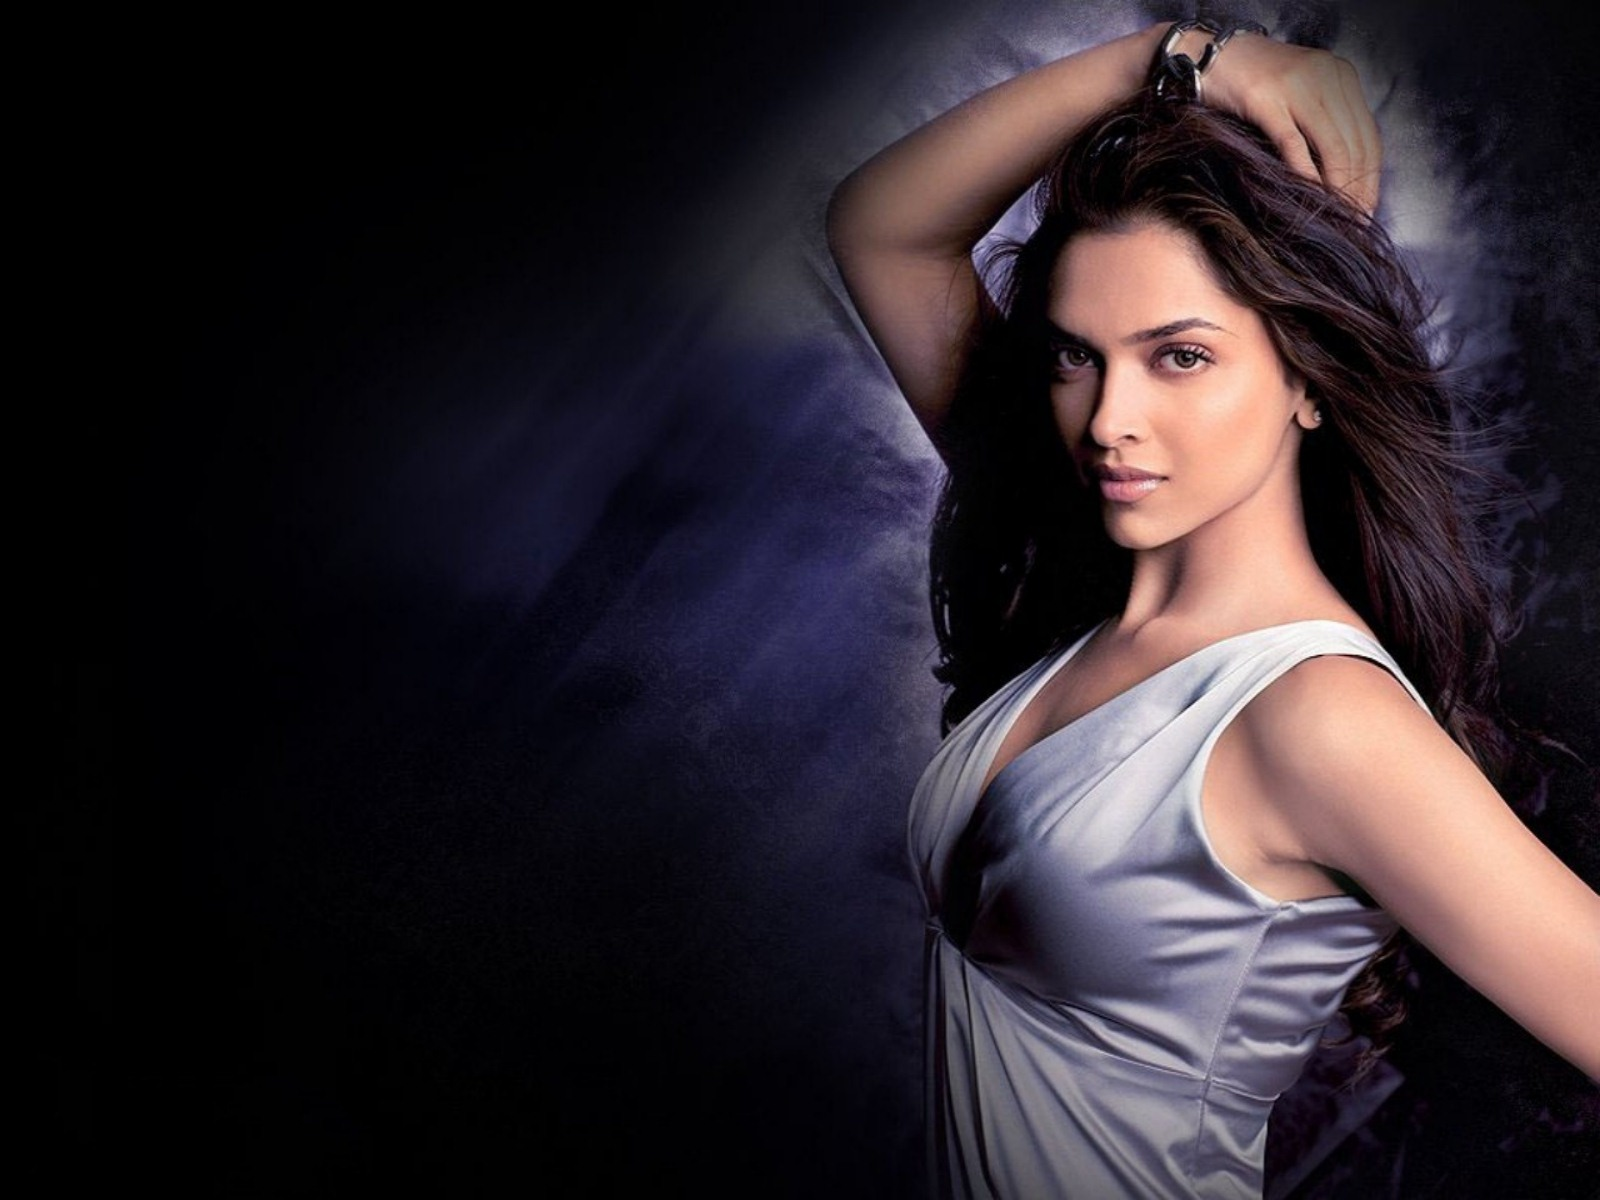 bollywood hd hot wallpapers group 1600x1200